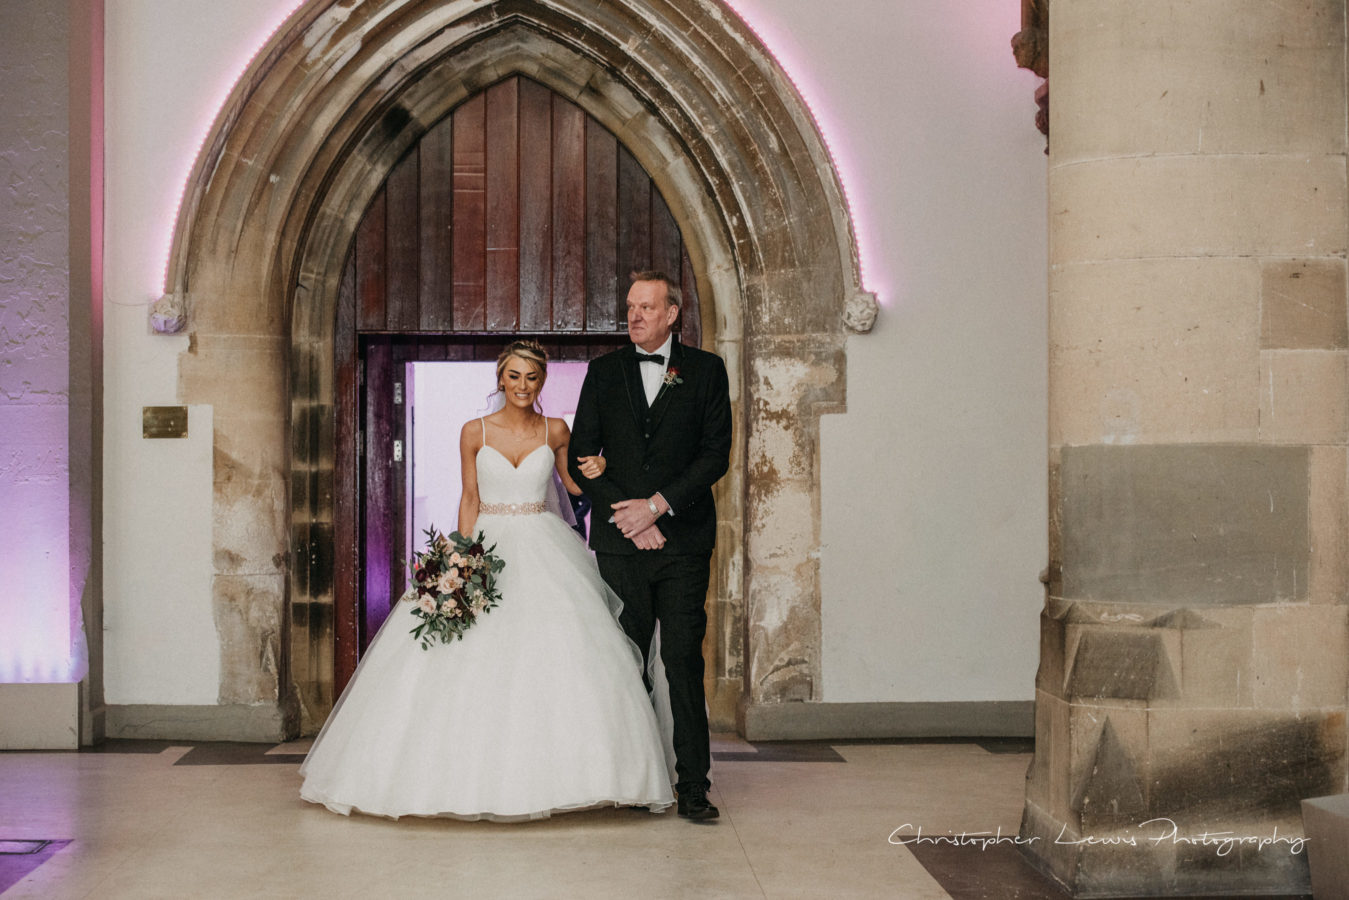 Monastery-Machester-Weddings- 28